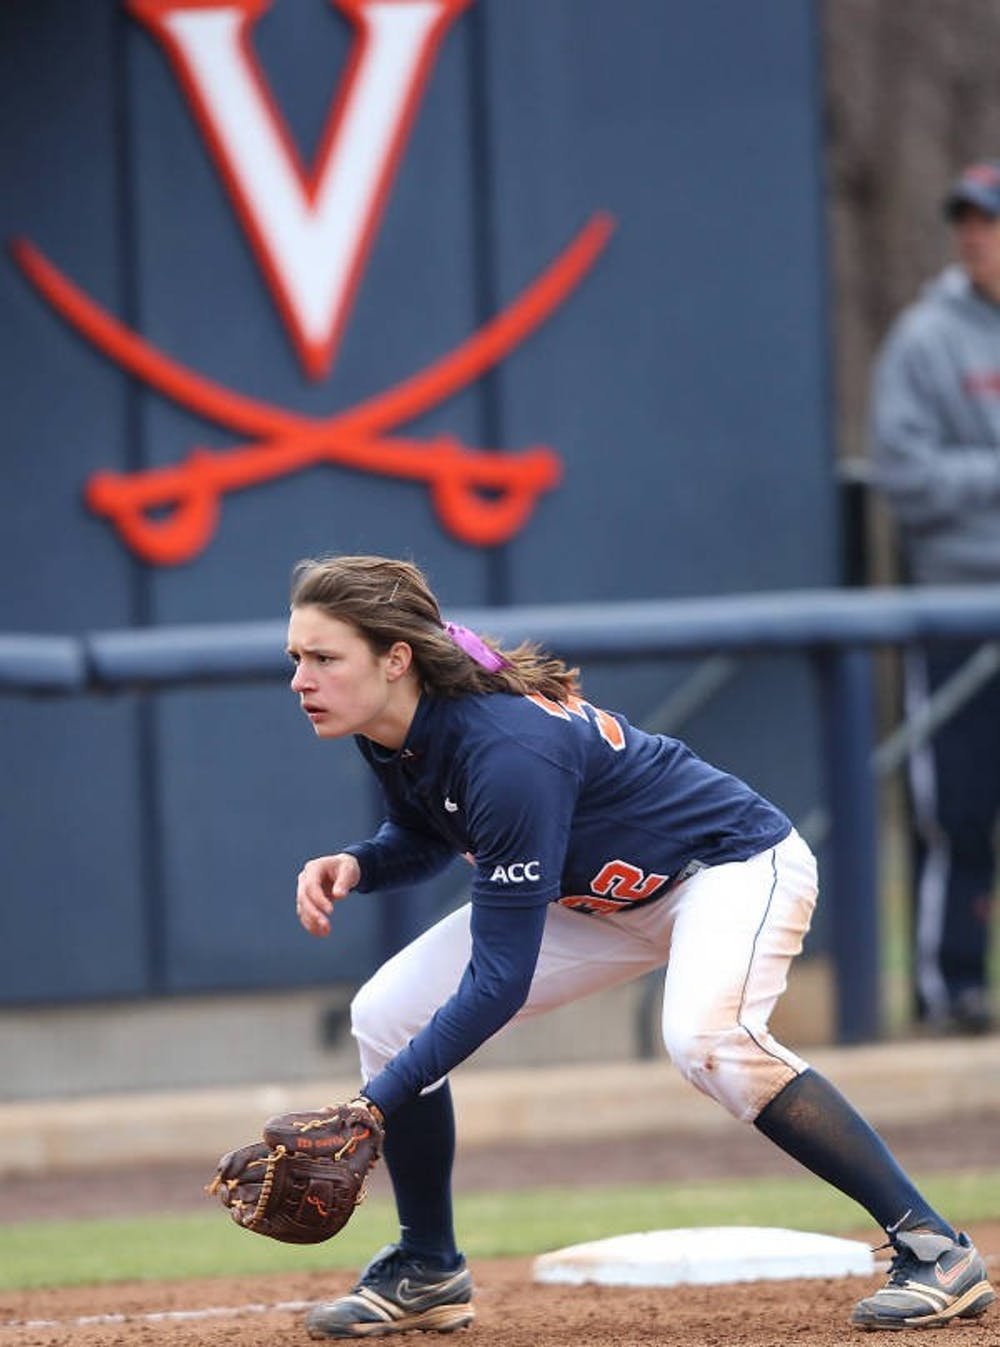 <p>Junior first baseman Megan Harris and Virginia softball team will look to record a pair of wins Wednesday evening against Delaware State. Harris has started every one of the Cavaliers&#8217; 36 games. </p>